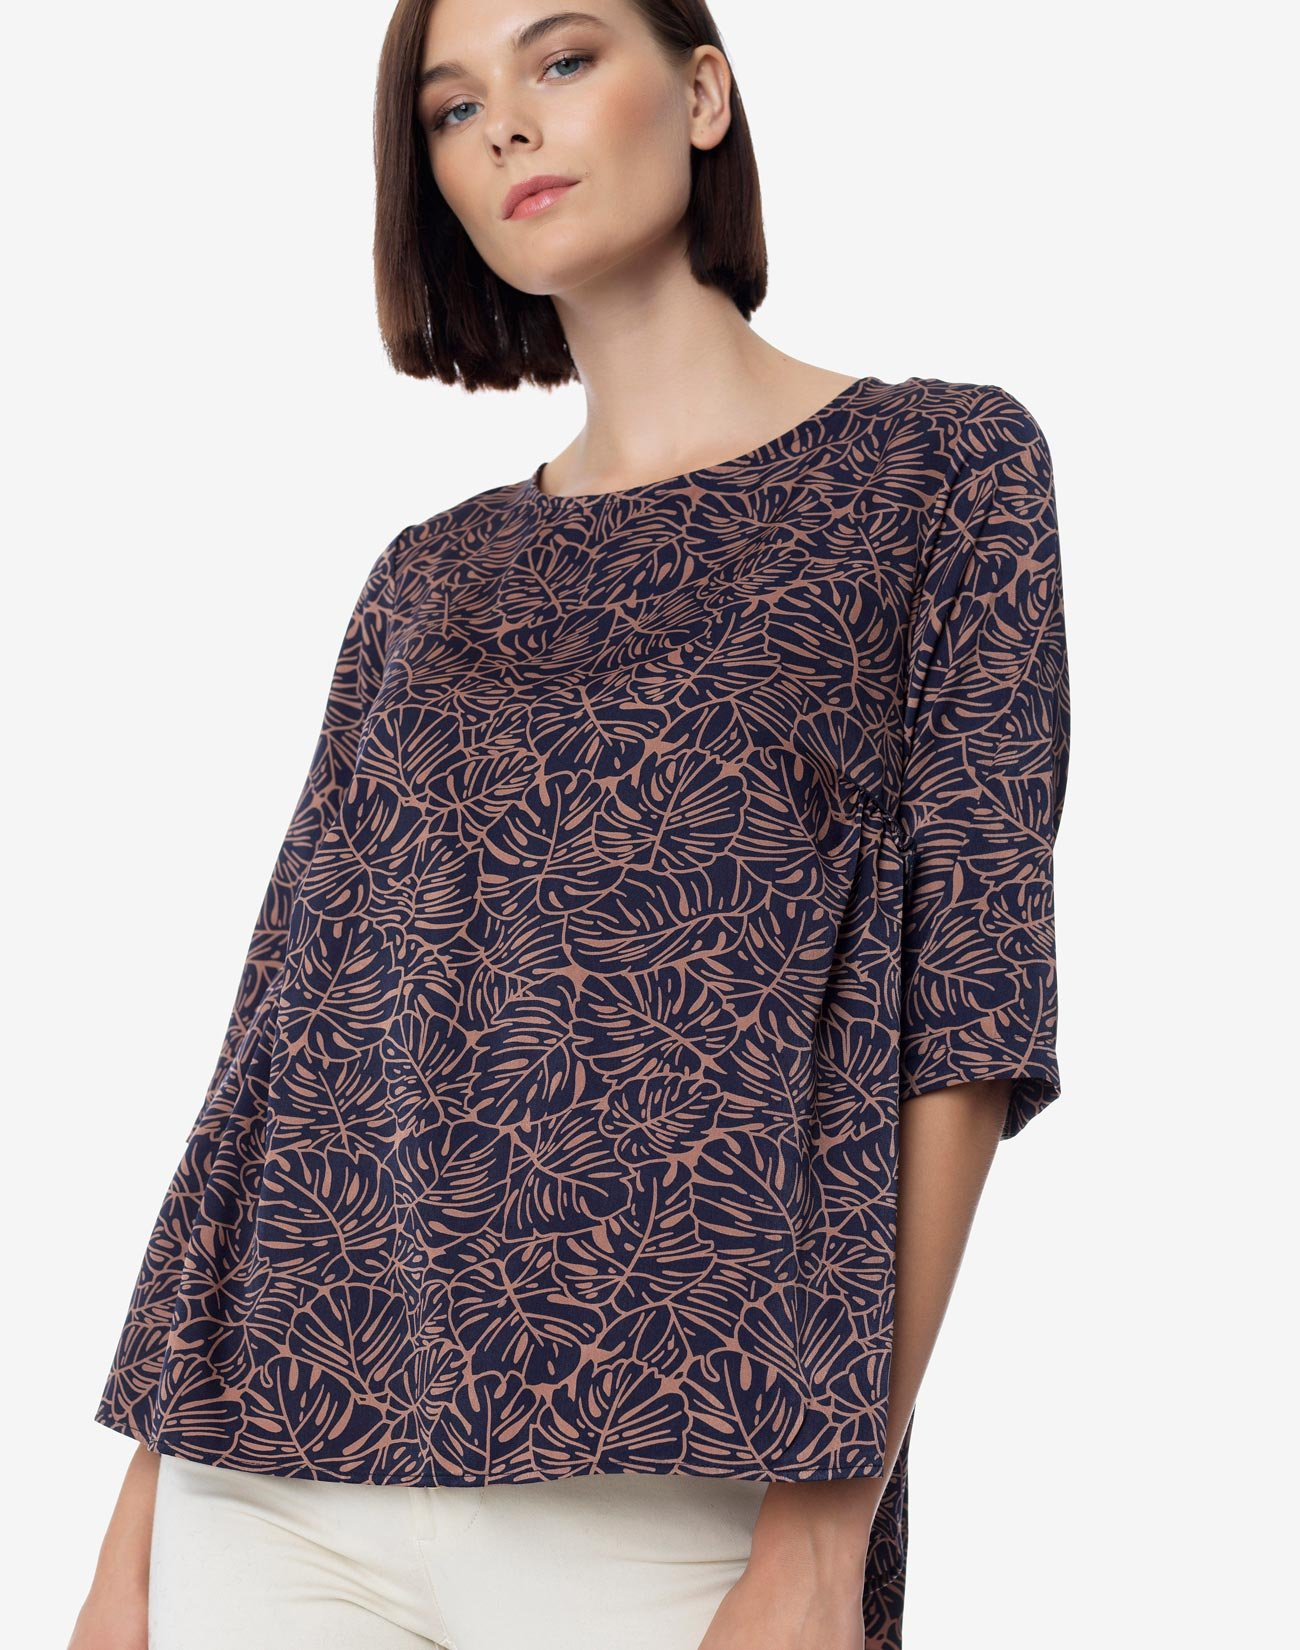 Printed top with pleat and ruffles